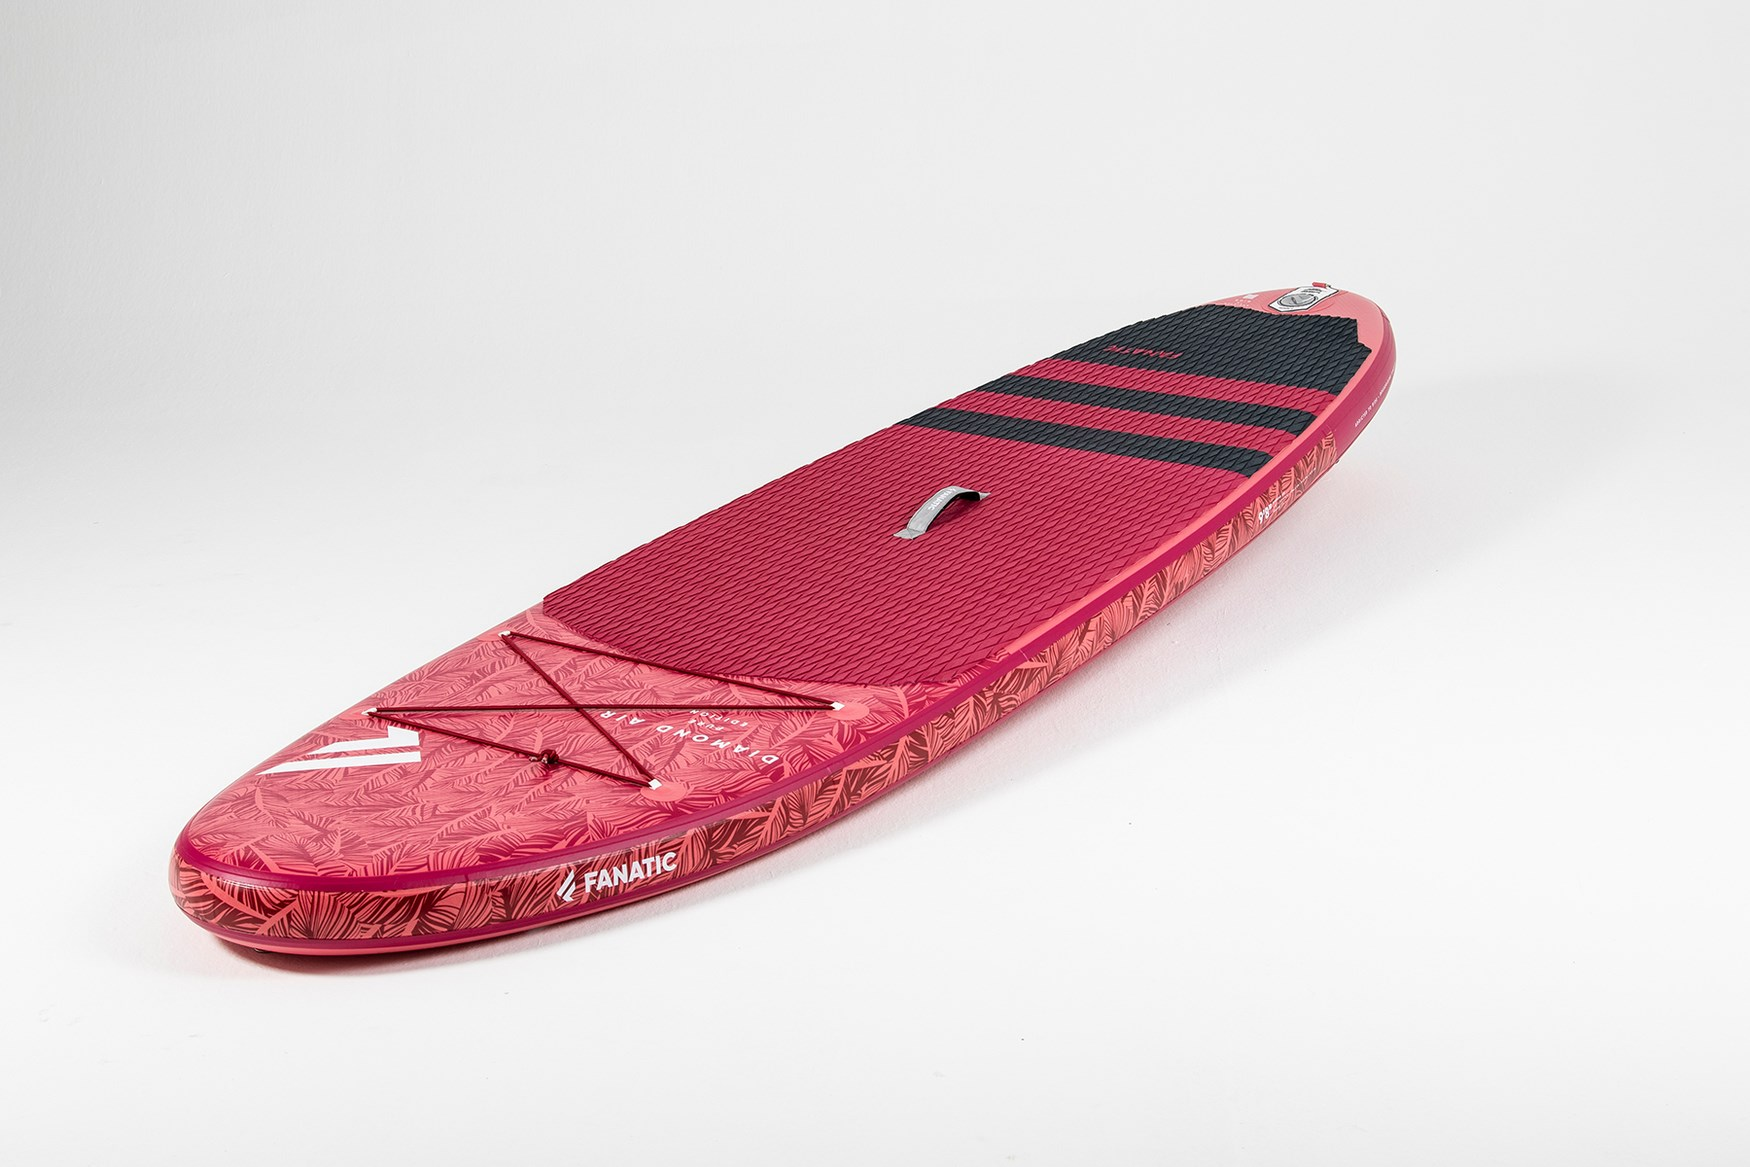 Fanatic SUP Diamond Air 2020